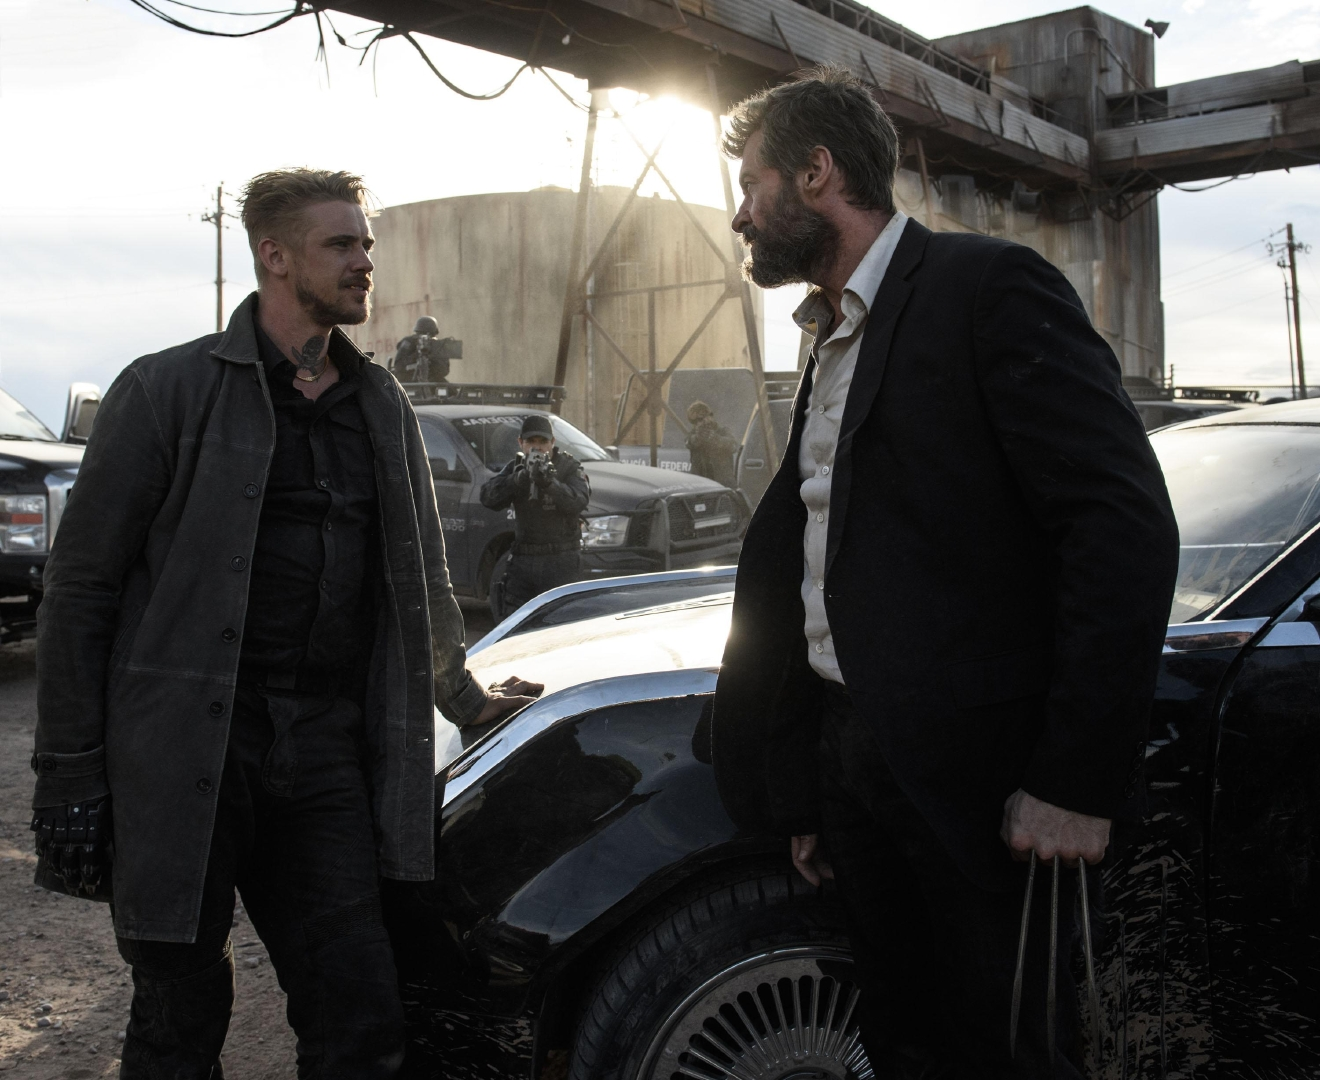 Pierce (Boyd Holbrook) and Logan (Hugh Jackman) face off. Photo Credit: Ben Rothstein.